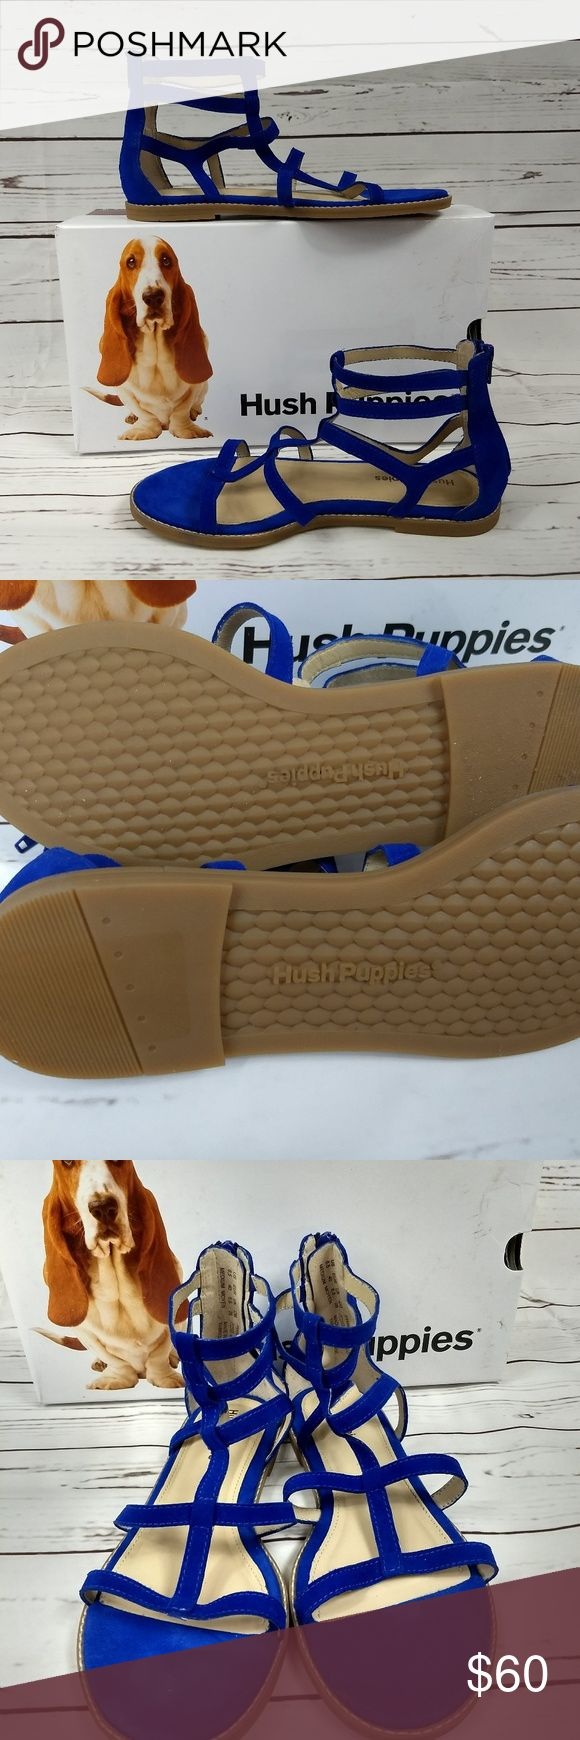 Hush Puppies Blue Gladiator Sandals Size 8.5 Women Original retail price $78.95.  New in box, tags removed.  I ship fast! Please ask questions before purchasing. IN425CL Hush Puppies Shoes Sandals